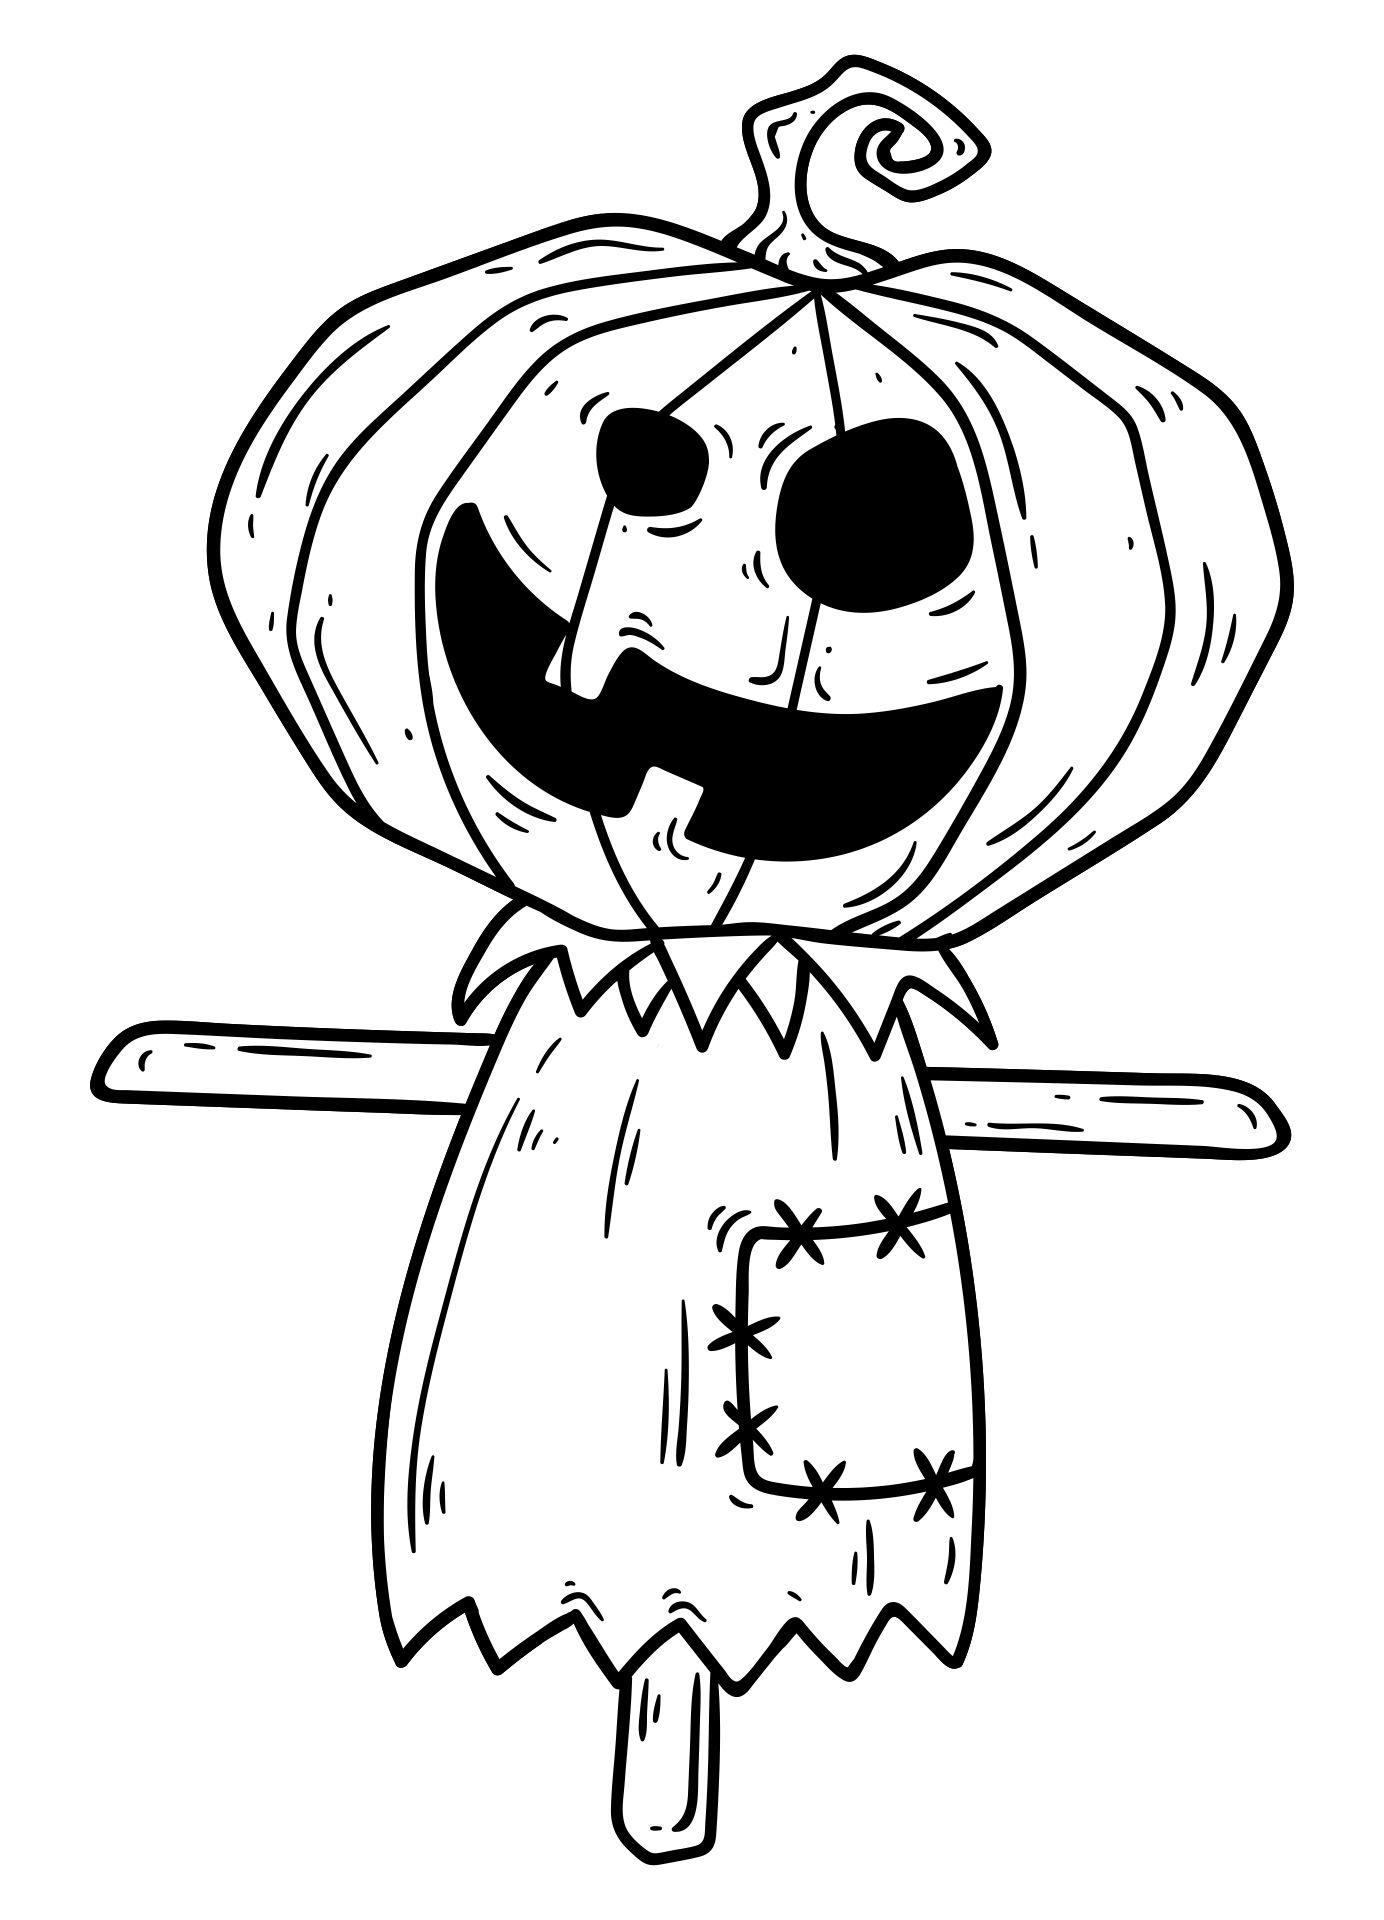 8 best images of halloween pumpkin templates printable for Small halloween pumpkin templates